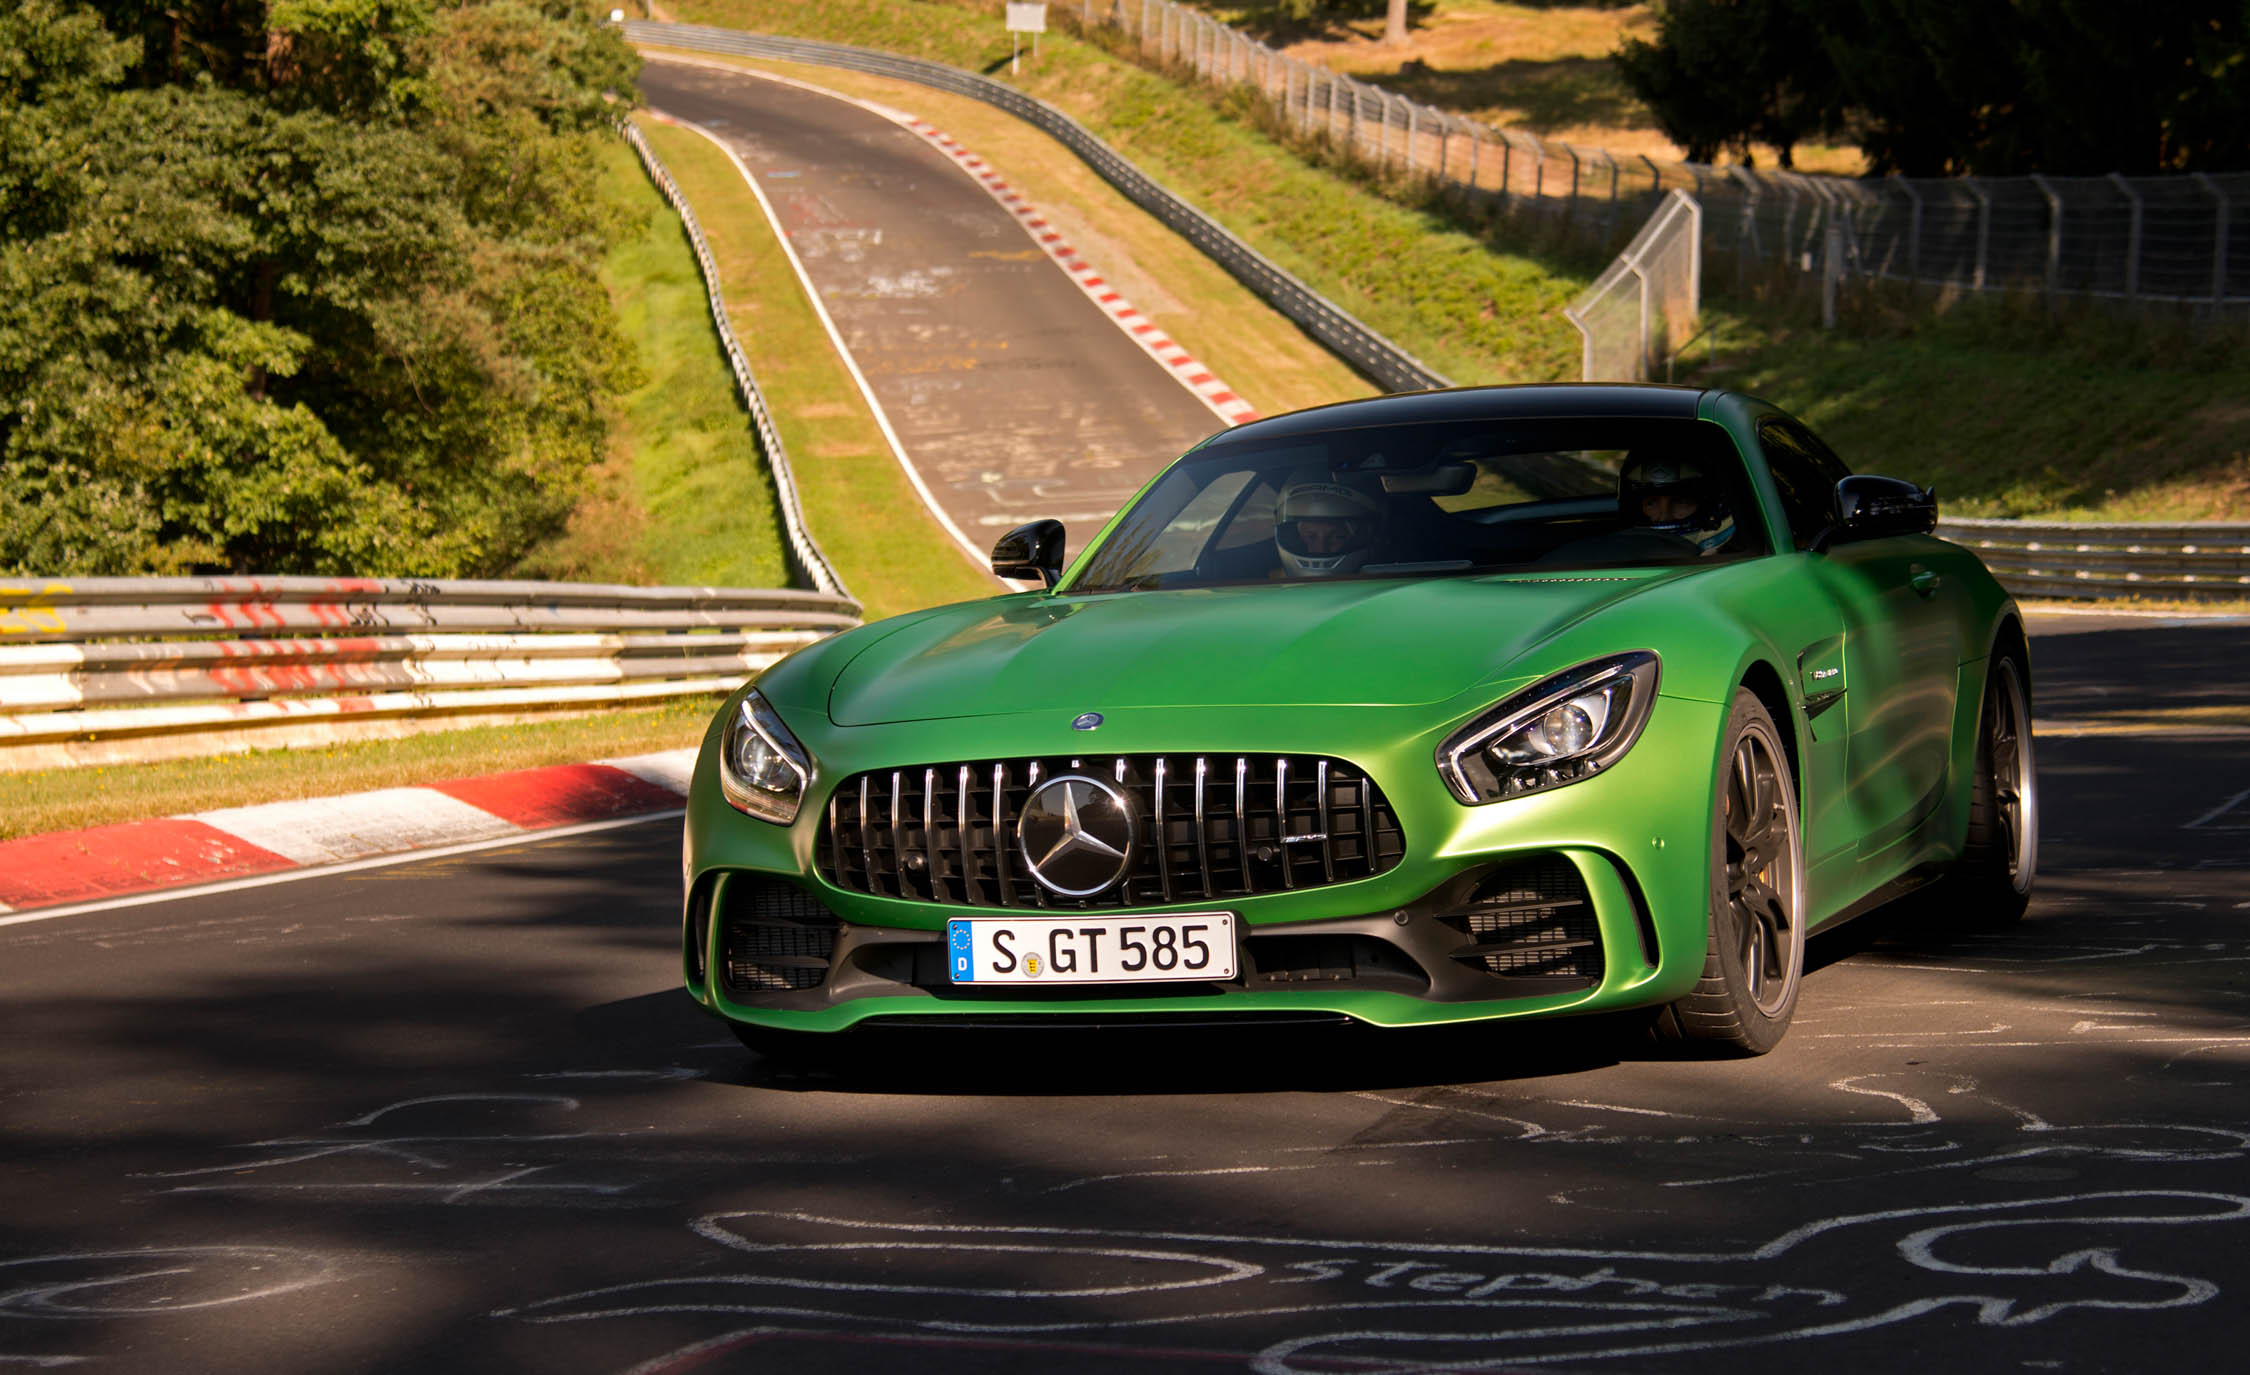 2017 Mercedes Amg Gt R Exterior Front And Side (View 15 of 22)